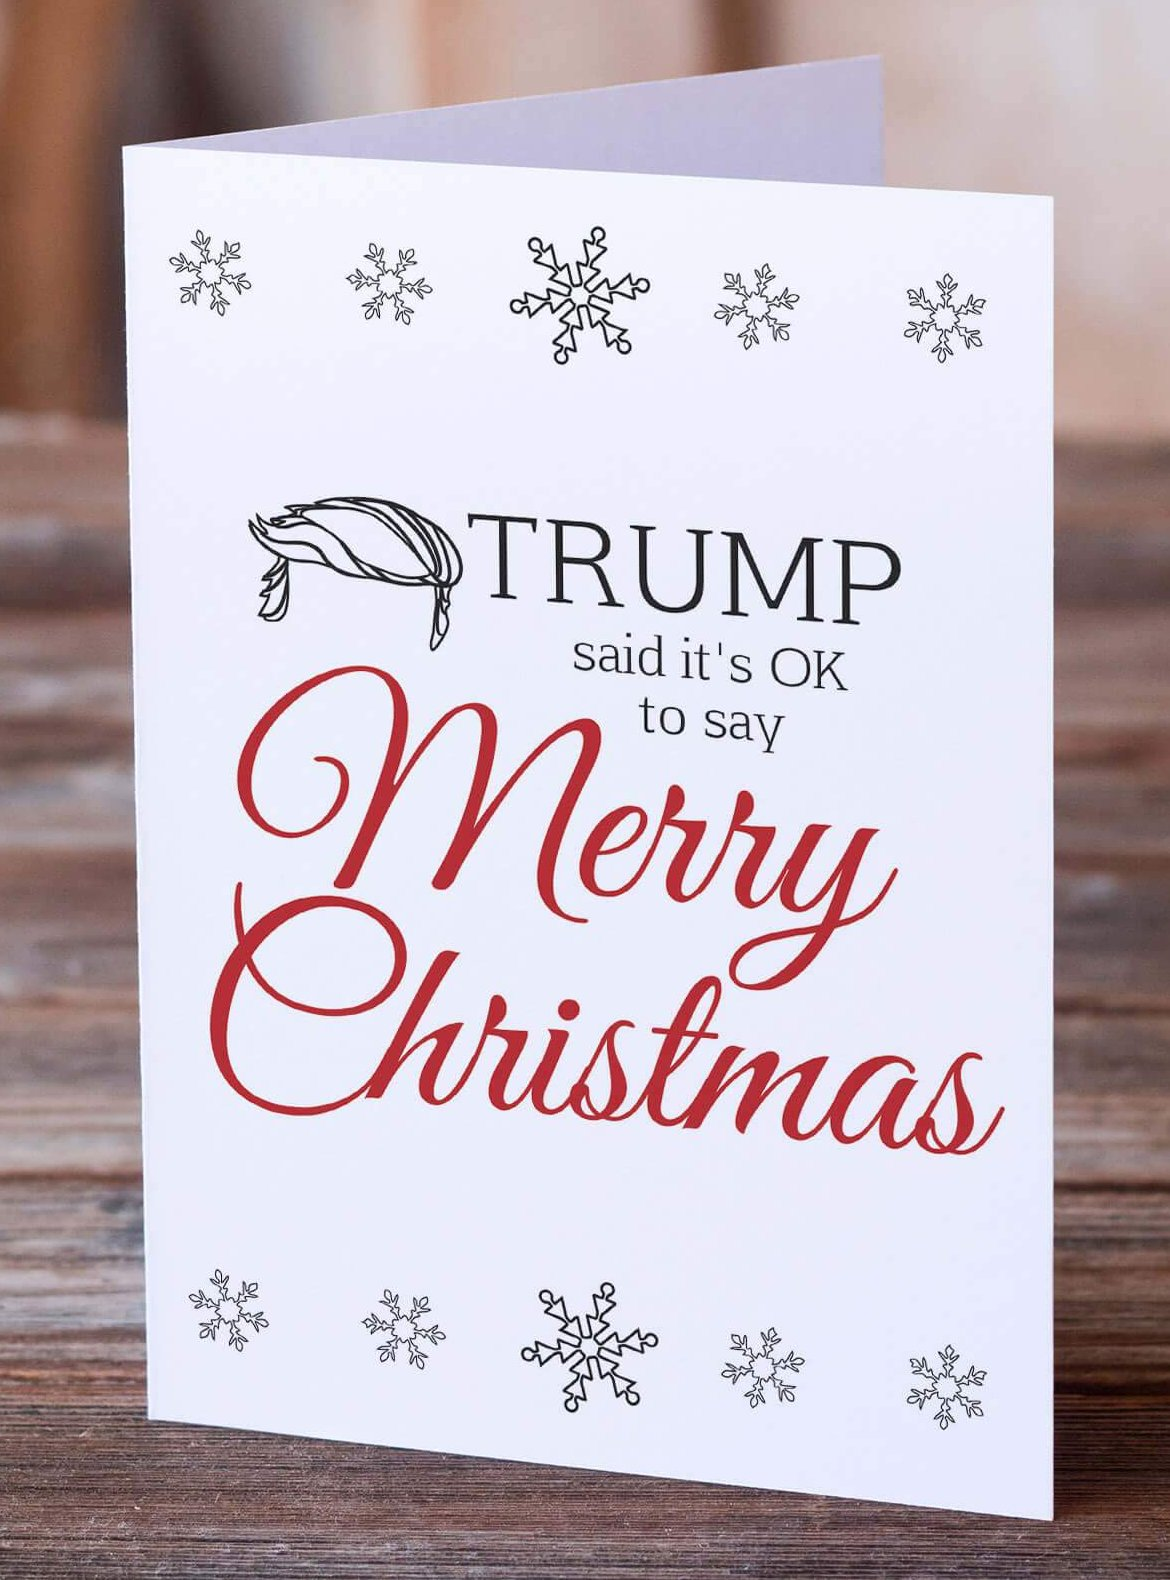 Trump Said Itu0027s OK To Say Merry Christmas...So, Happy Holidays!